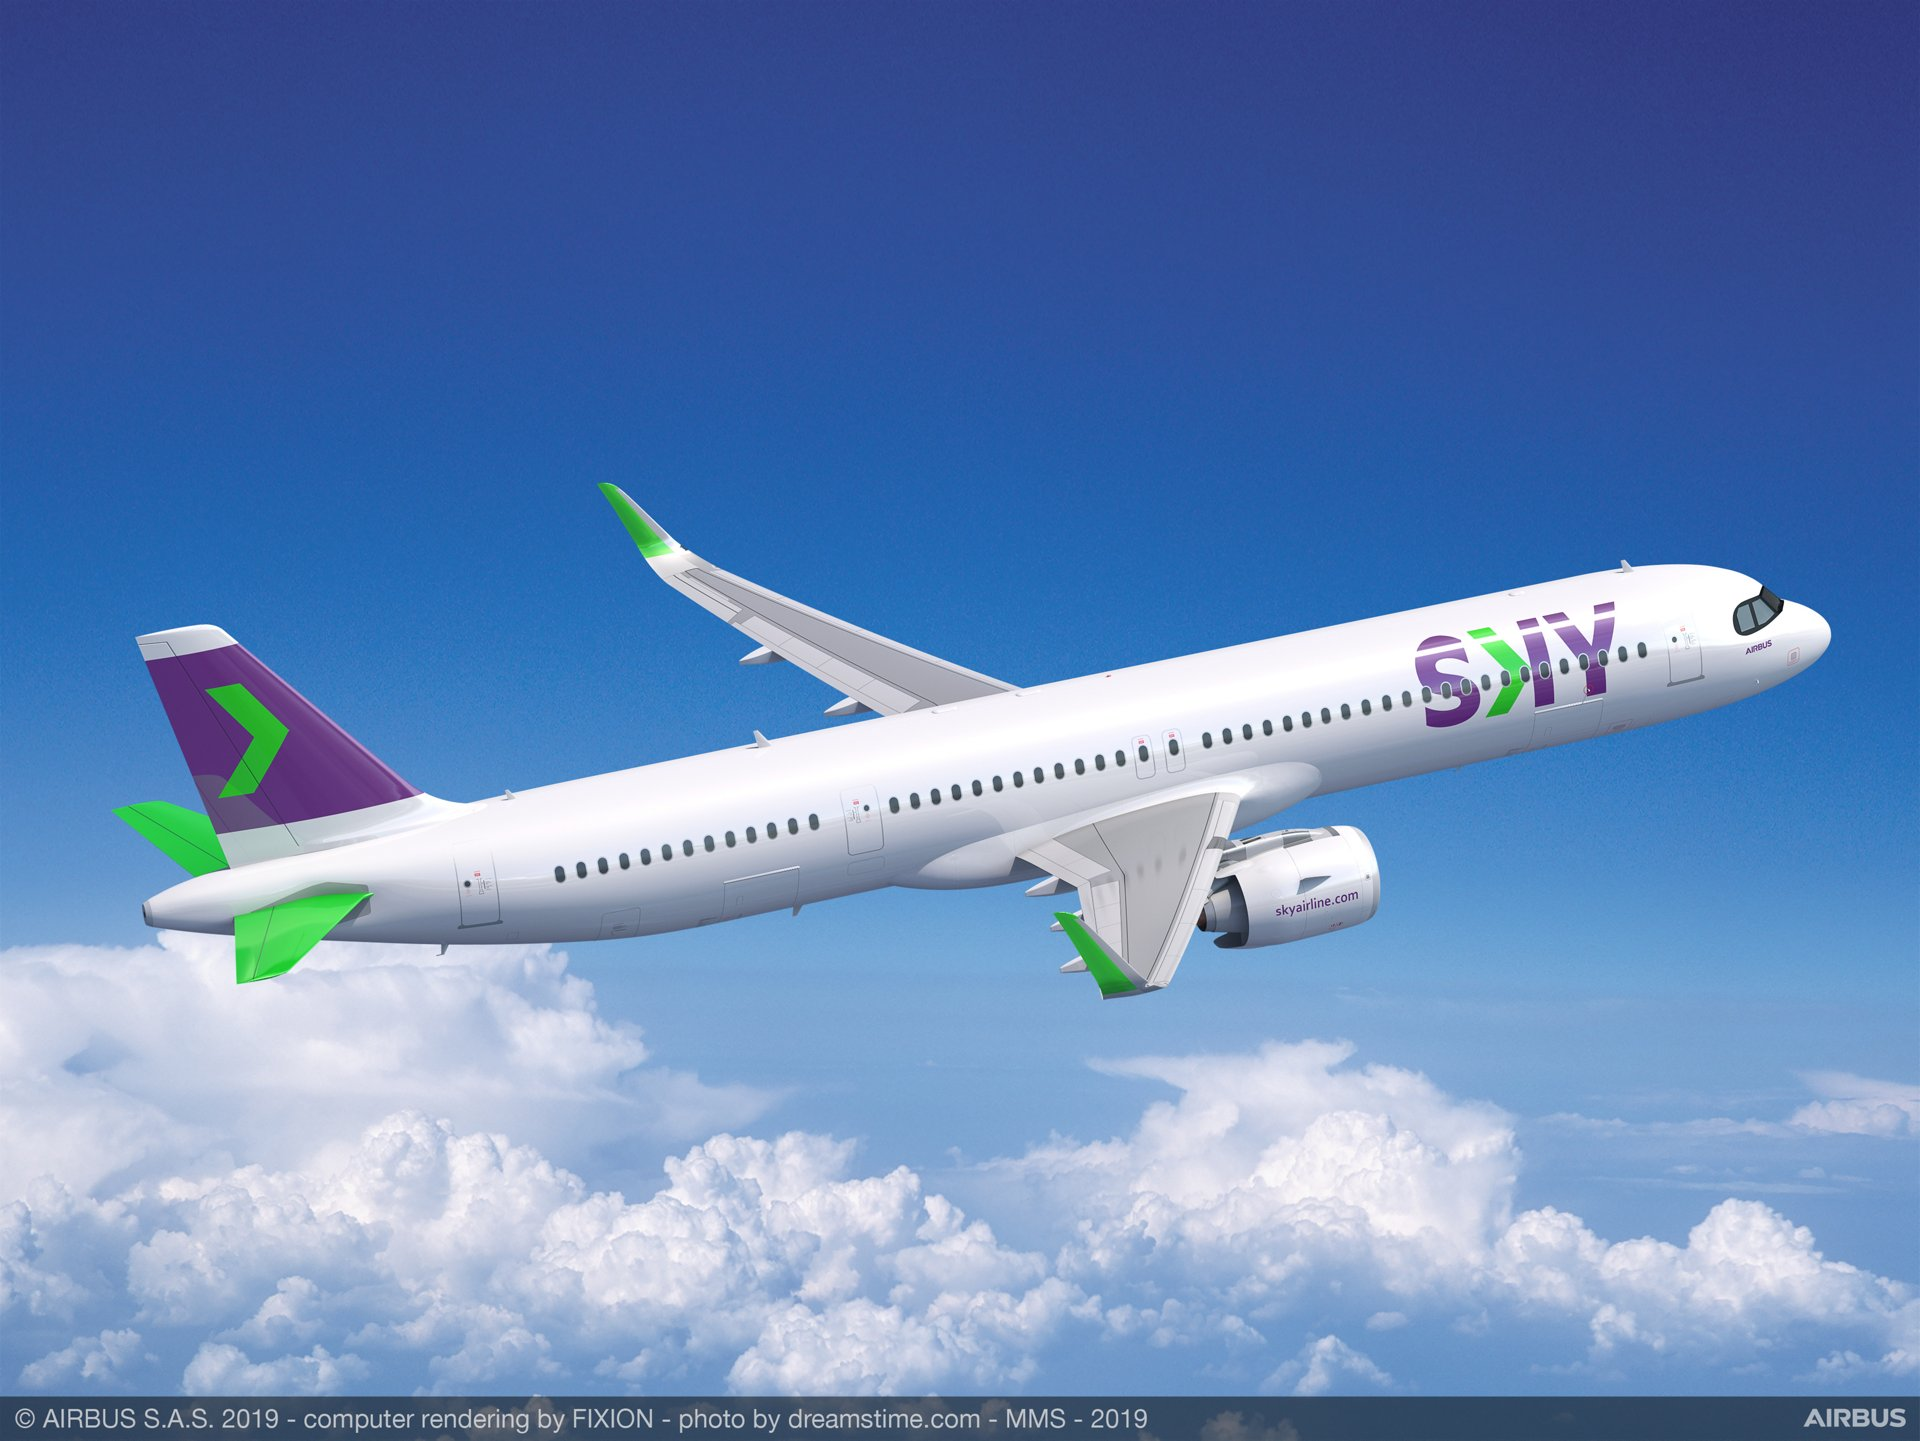 The acquisition of 10 A321XLR aircraft will allow Chilean-based operator SKY to offer new destinations to its customers